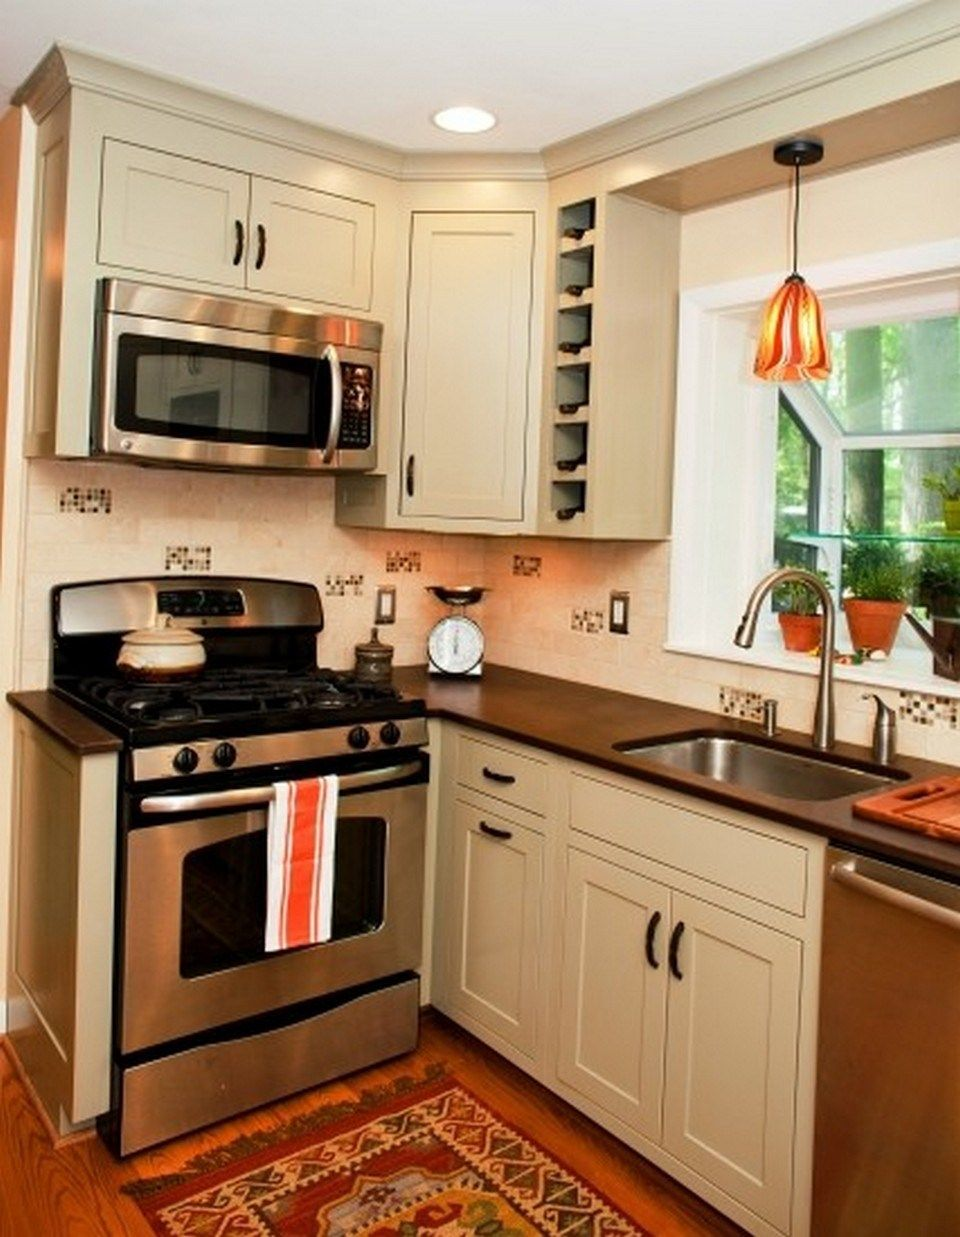 99 Small Kitchen Remodel And Amazing Storage Hacks On A Budget 44